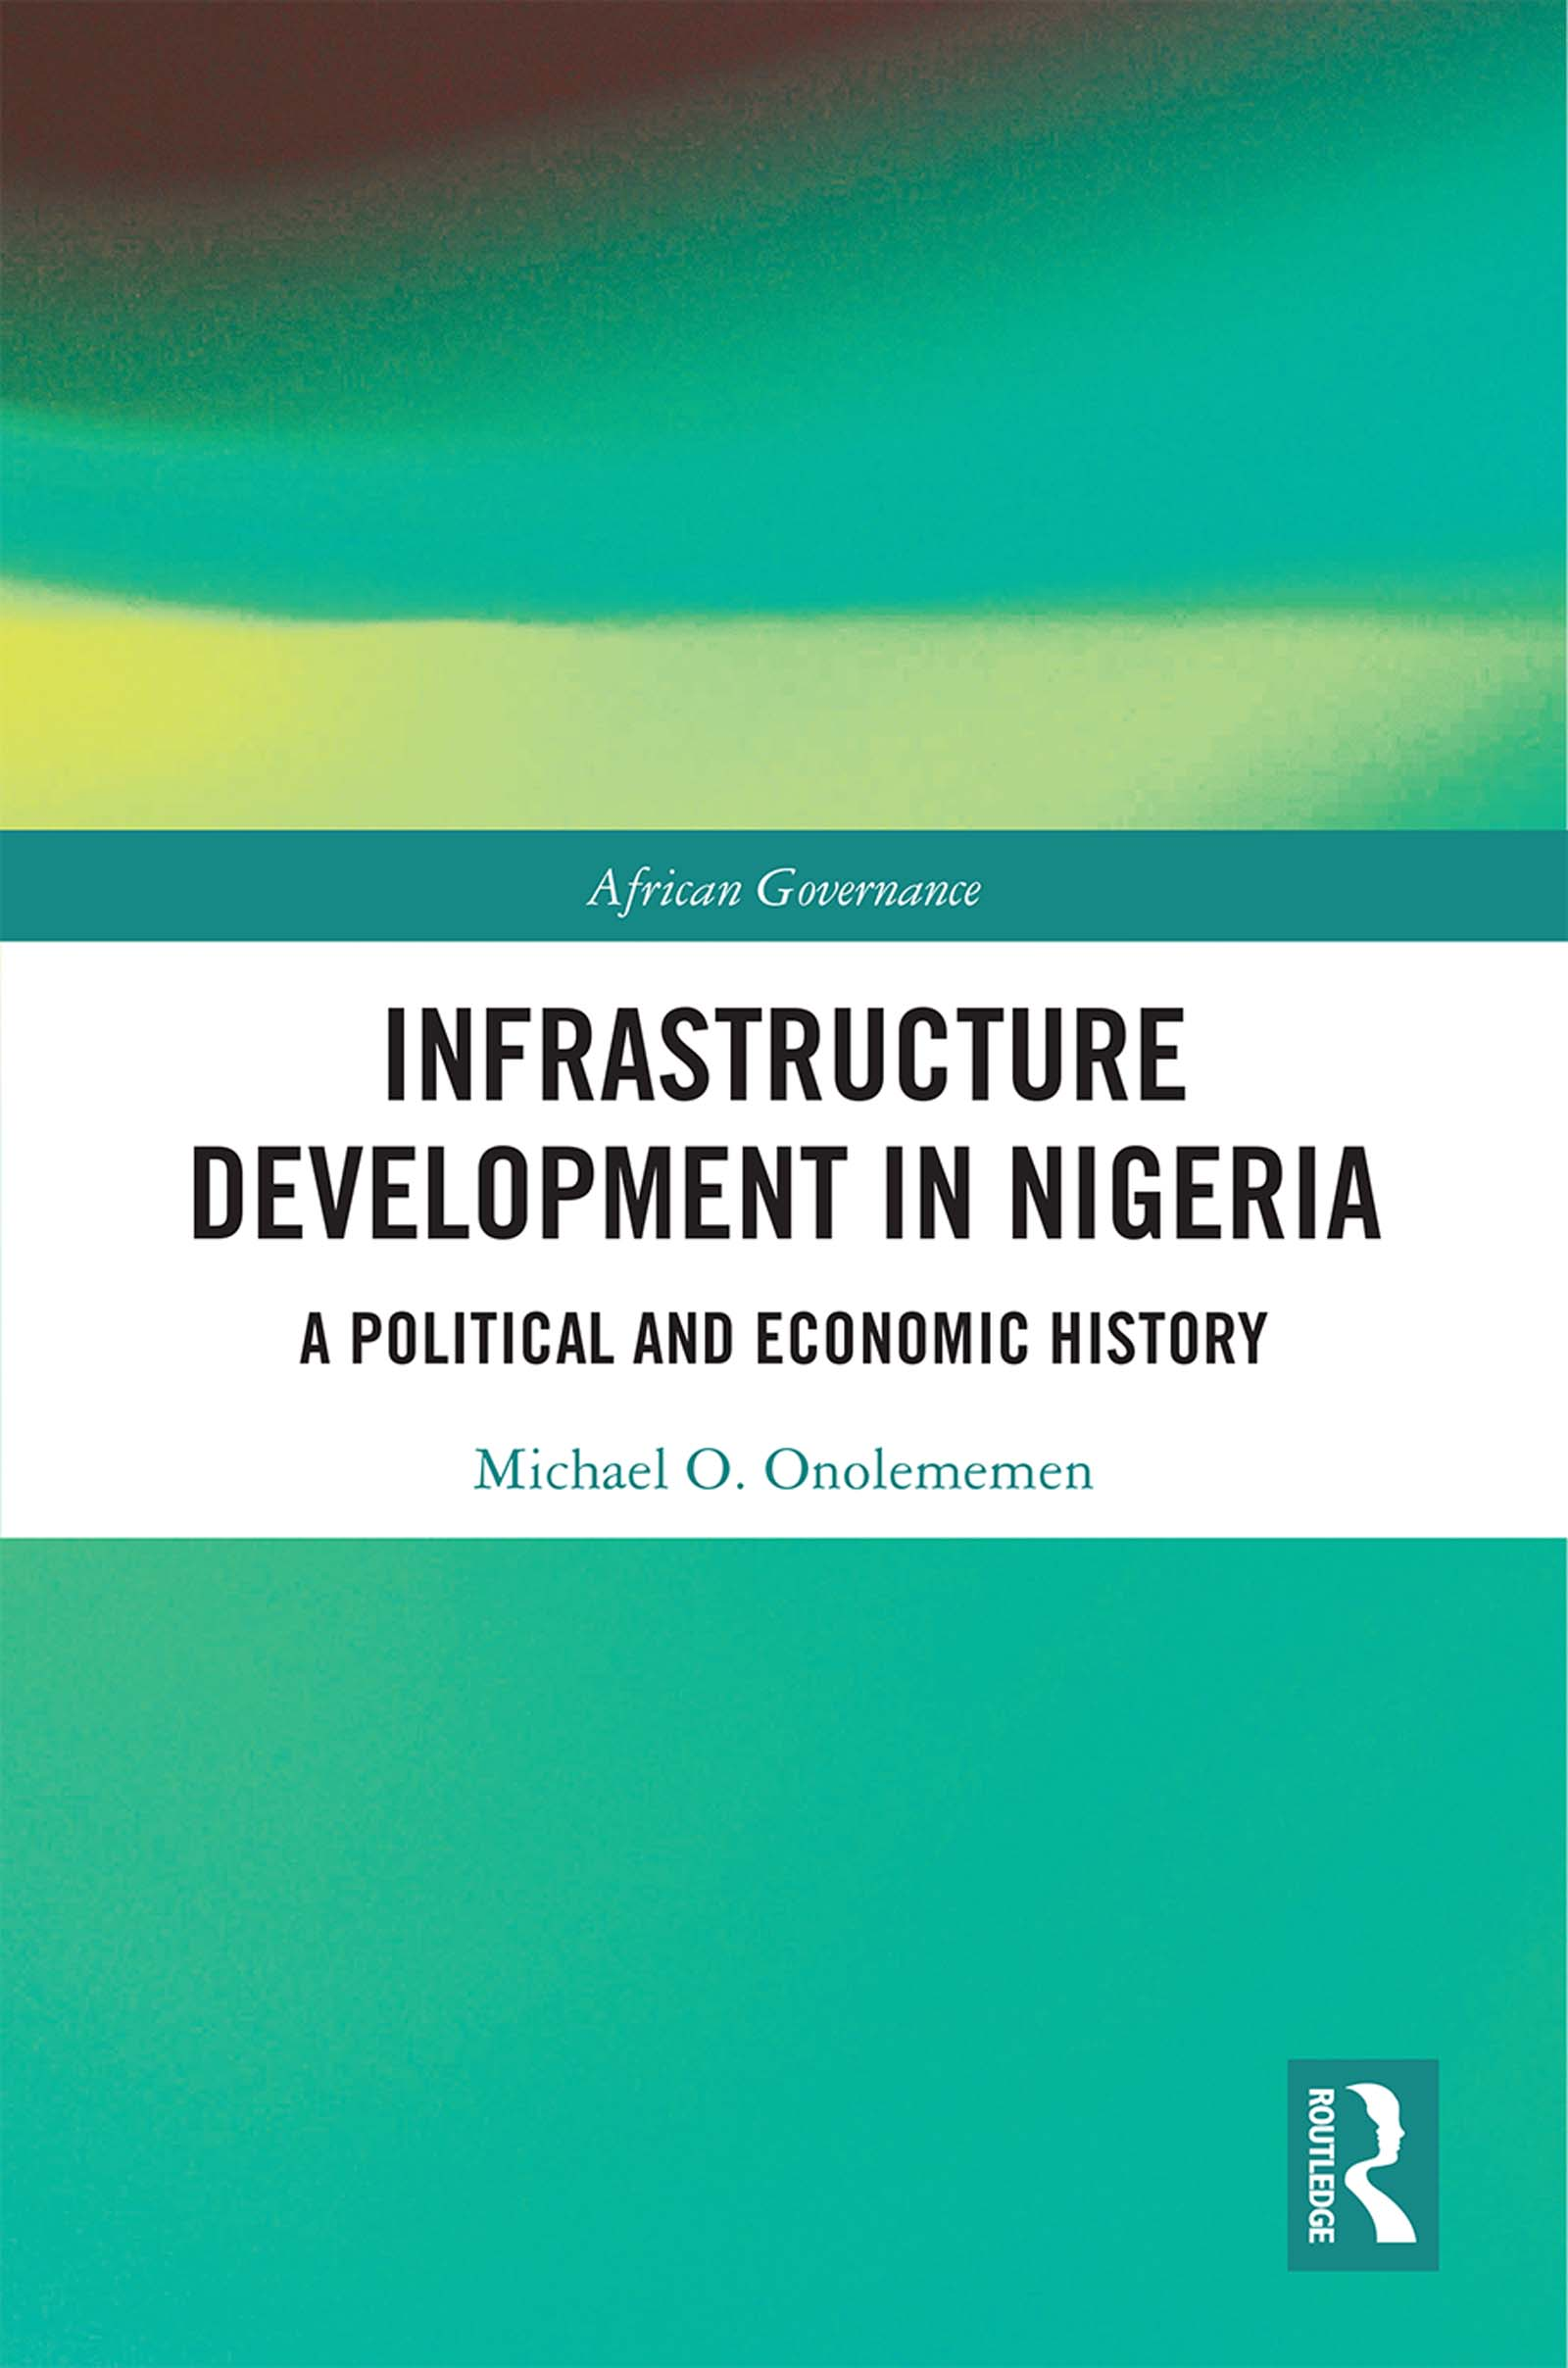 Infrastructure Development in Nigeria: A Political and Economic History book cover